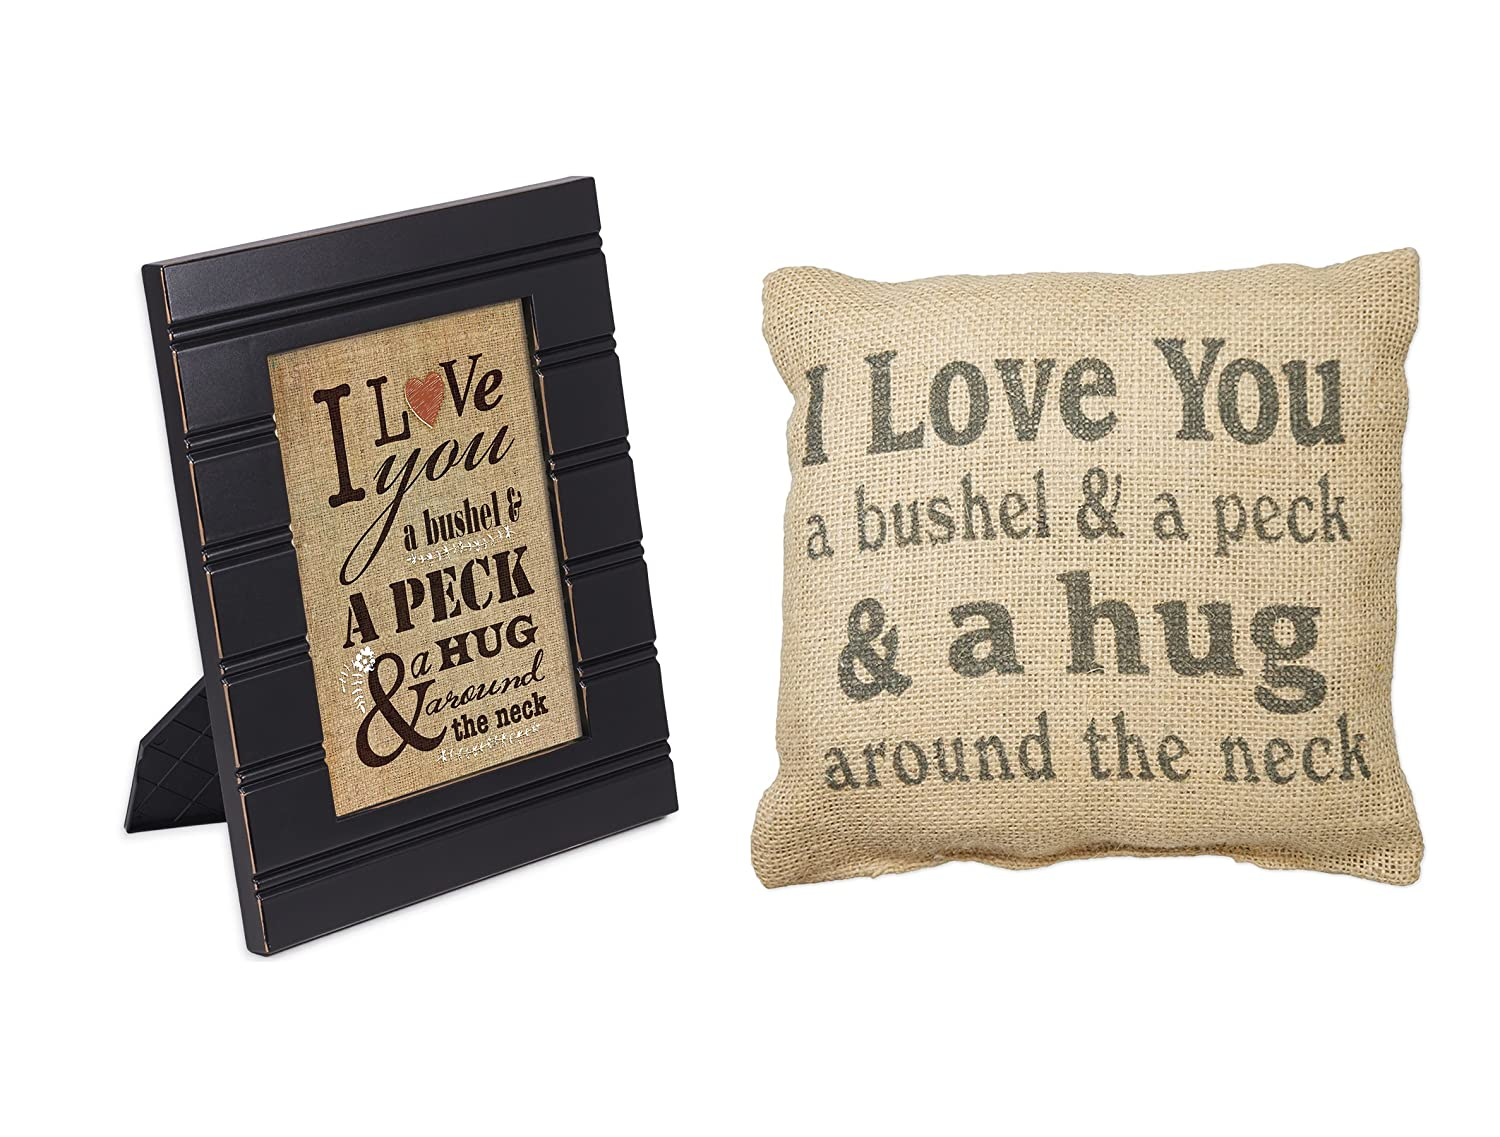 Amazon.com: Love You a Bushel and Peck Black Picture Frame and ...